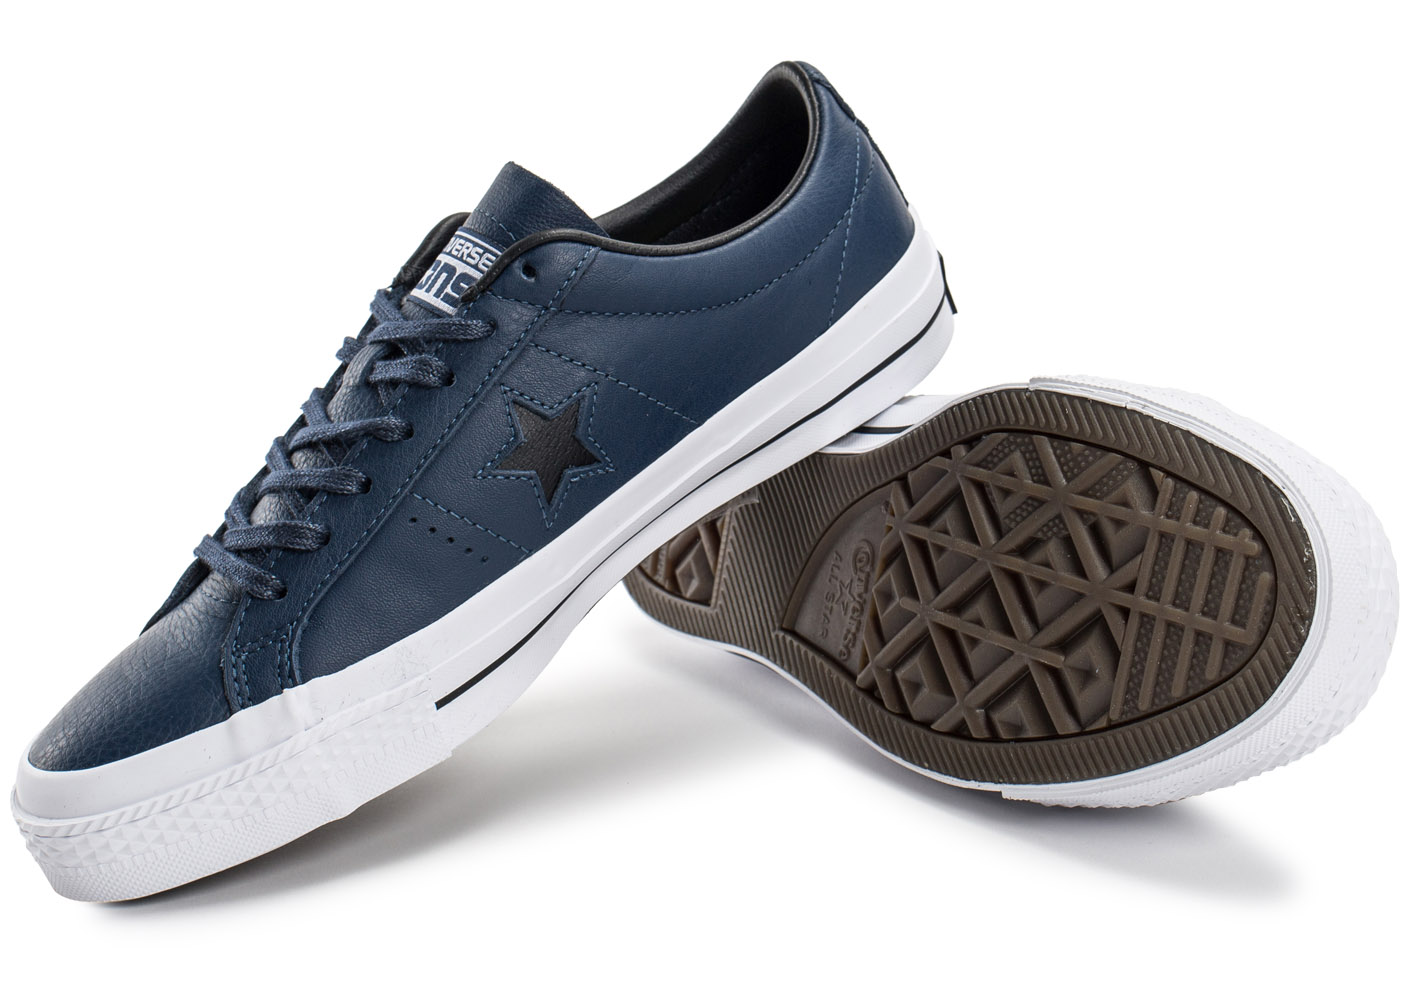 converse one star leather bleu marine baskets tennis homme. Black Bedroom Furniture Sets. Home Design Ideas